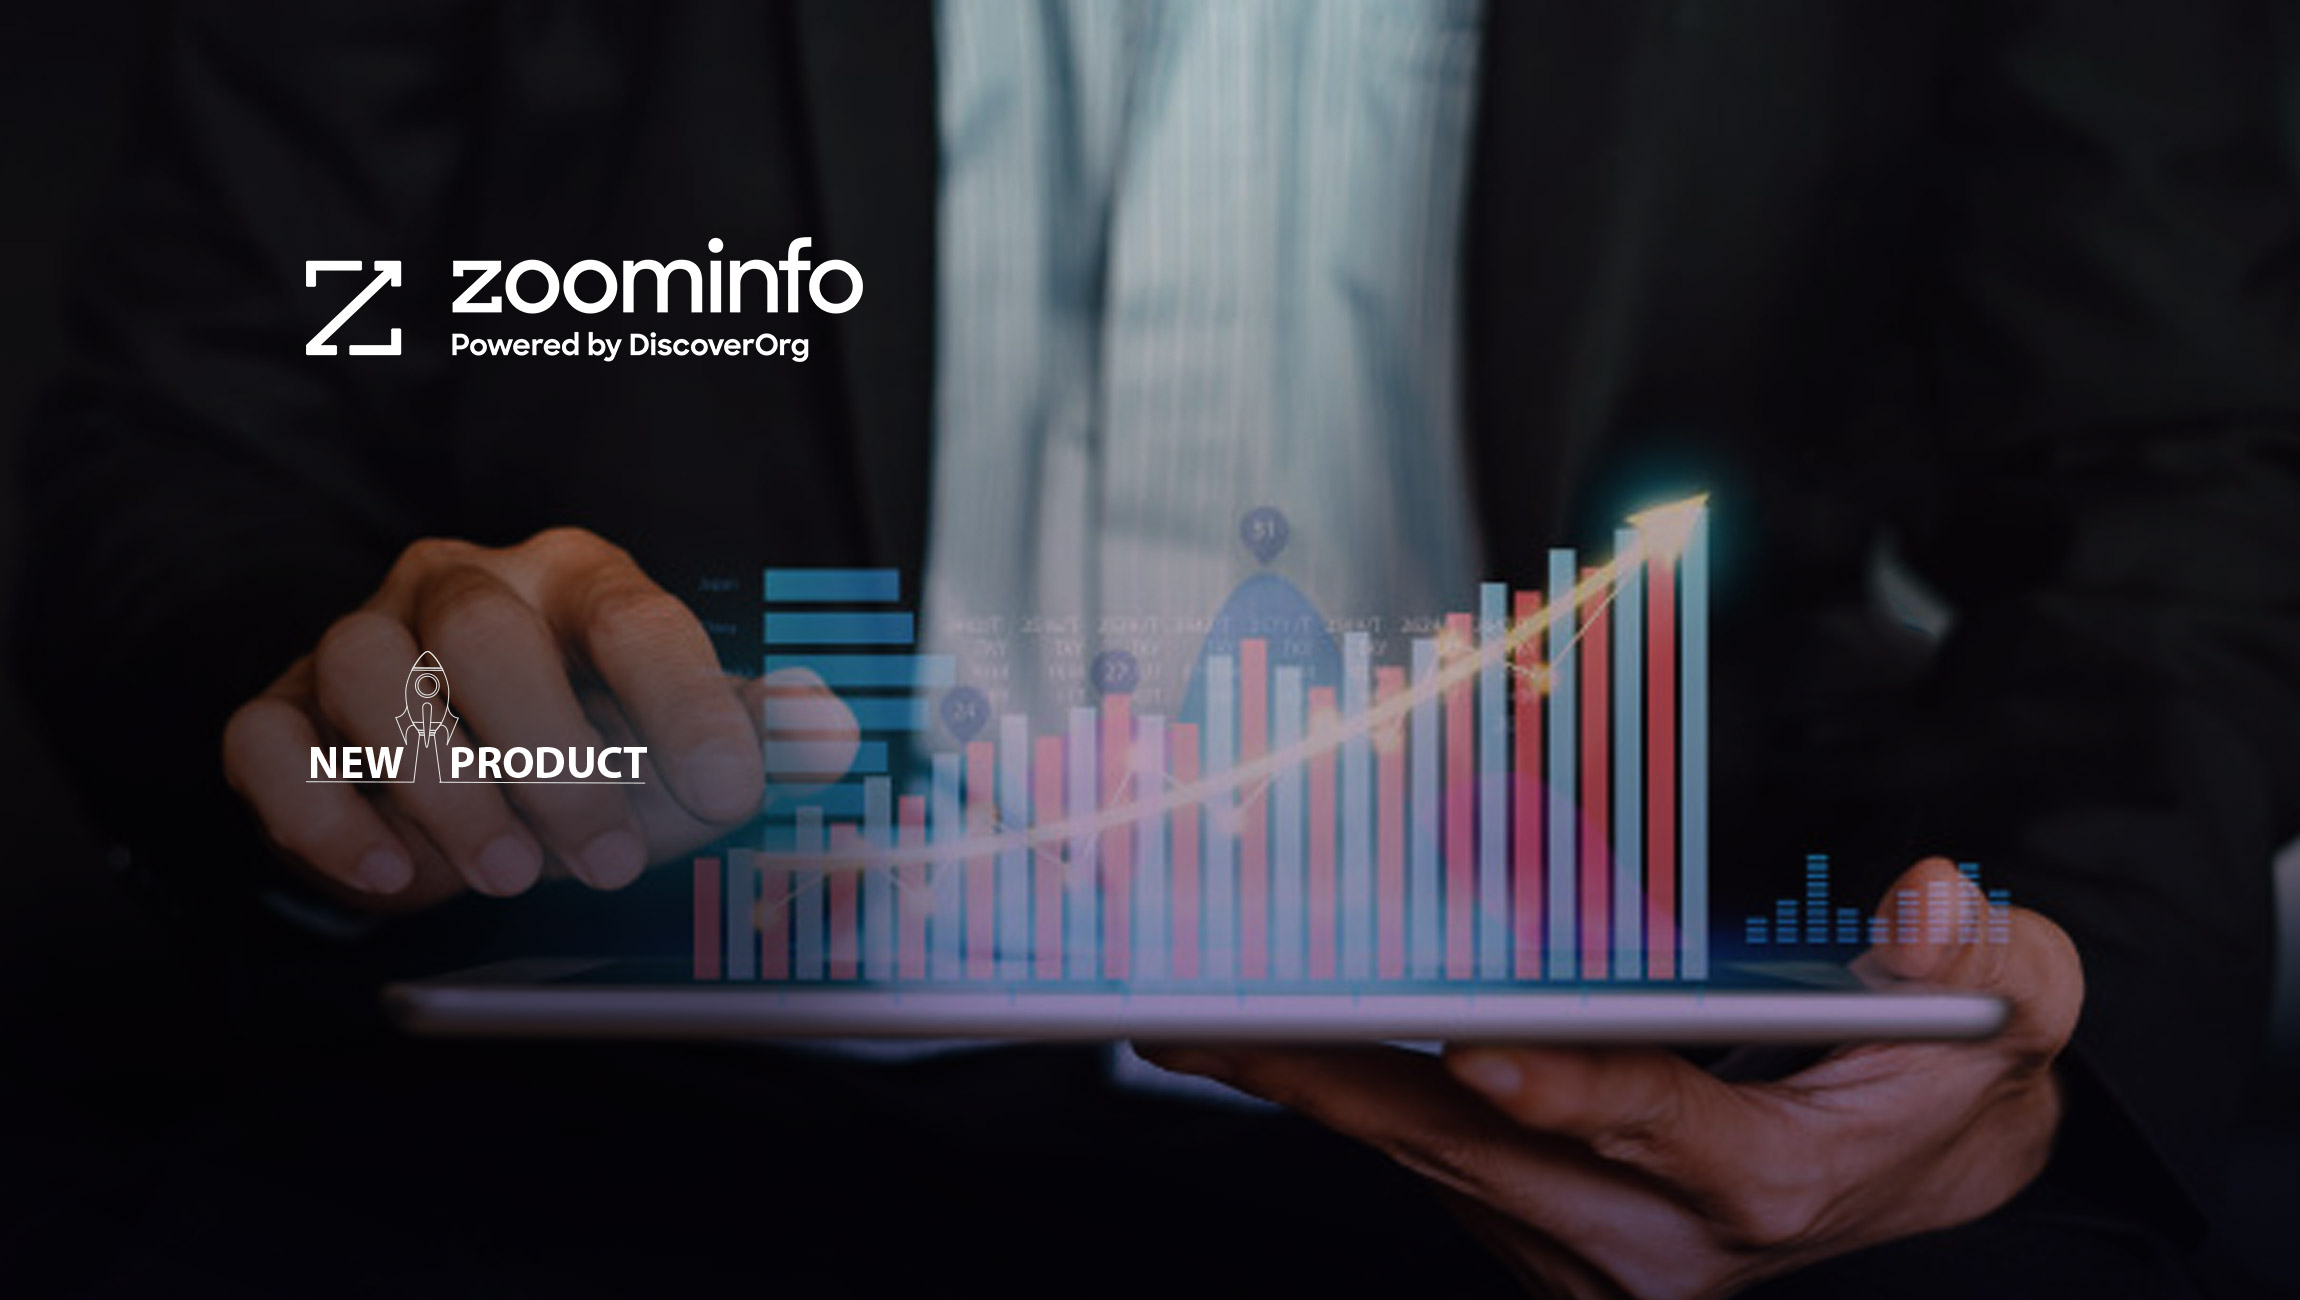 ZoomInfo Launches 'Workflows' to Automate Outbound Sales and Marketing Processes